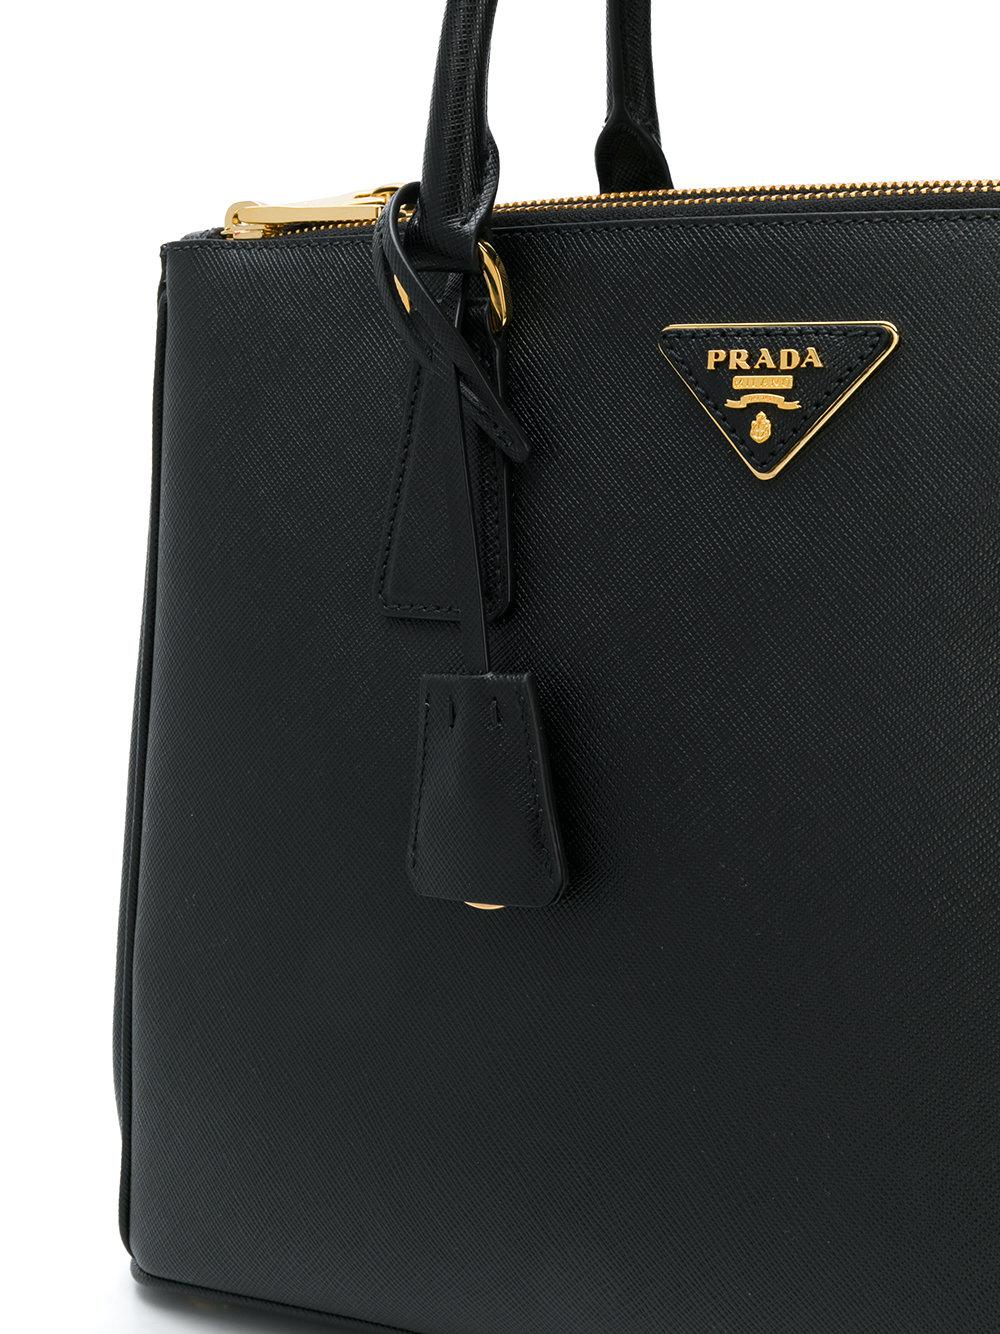 5f0ca8a263d9 where to buy coupon code for lyst prada large galleria tote in black 7b8fb  cbbe5 90345